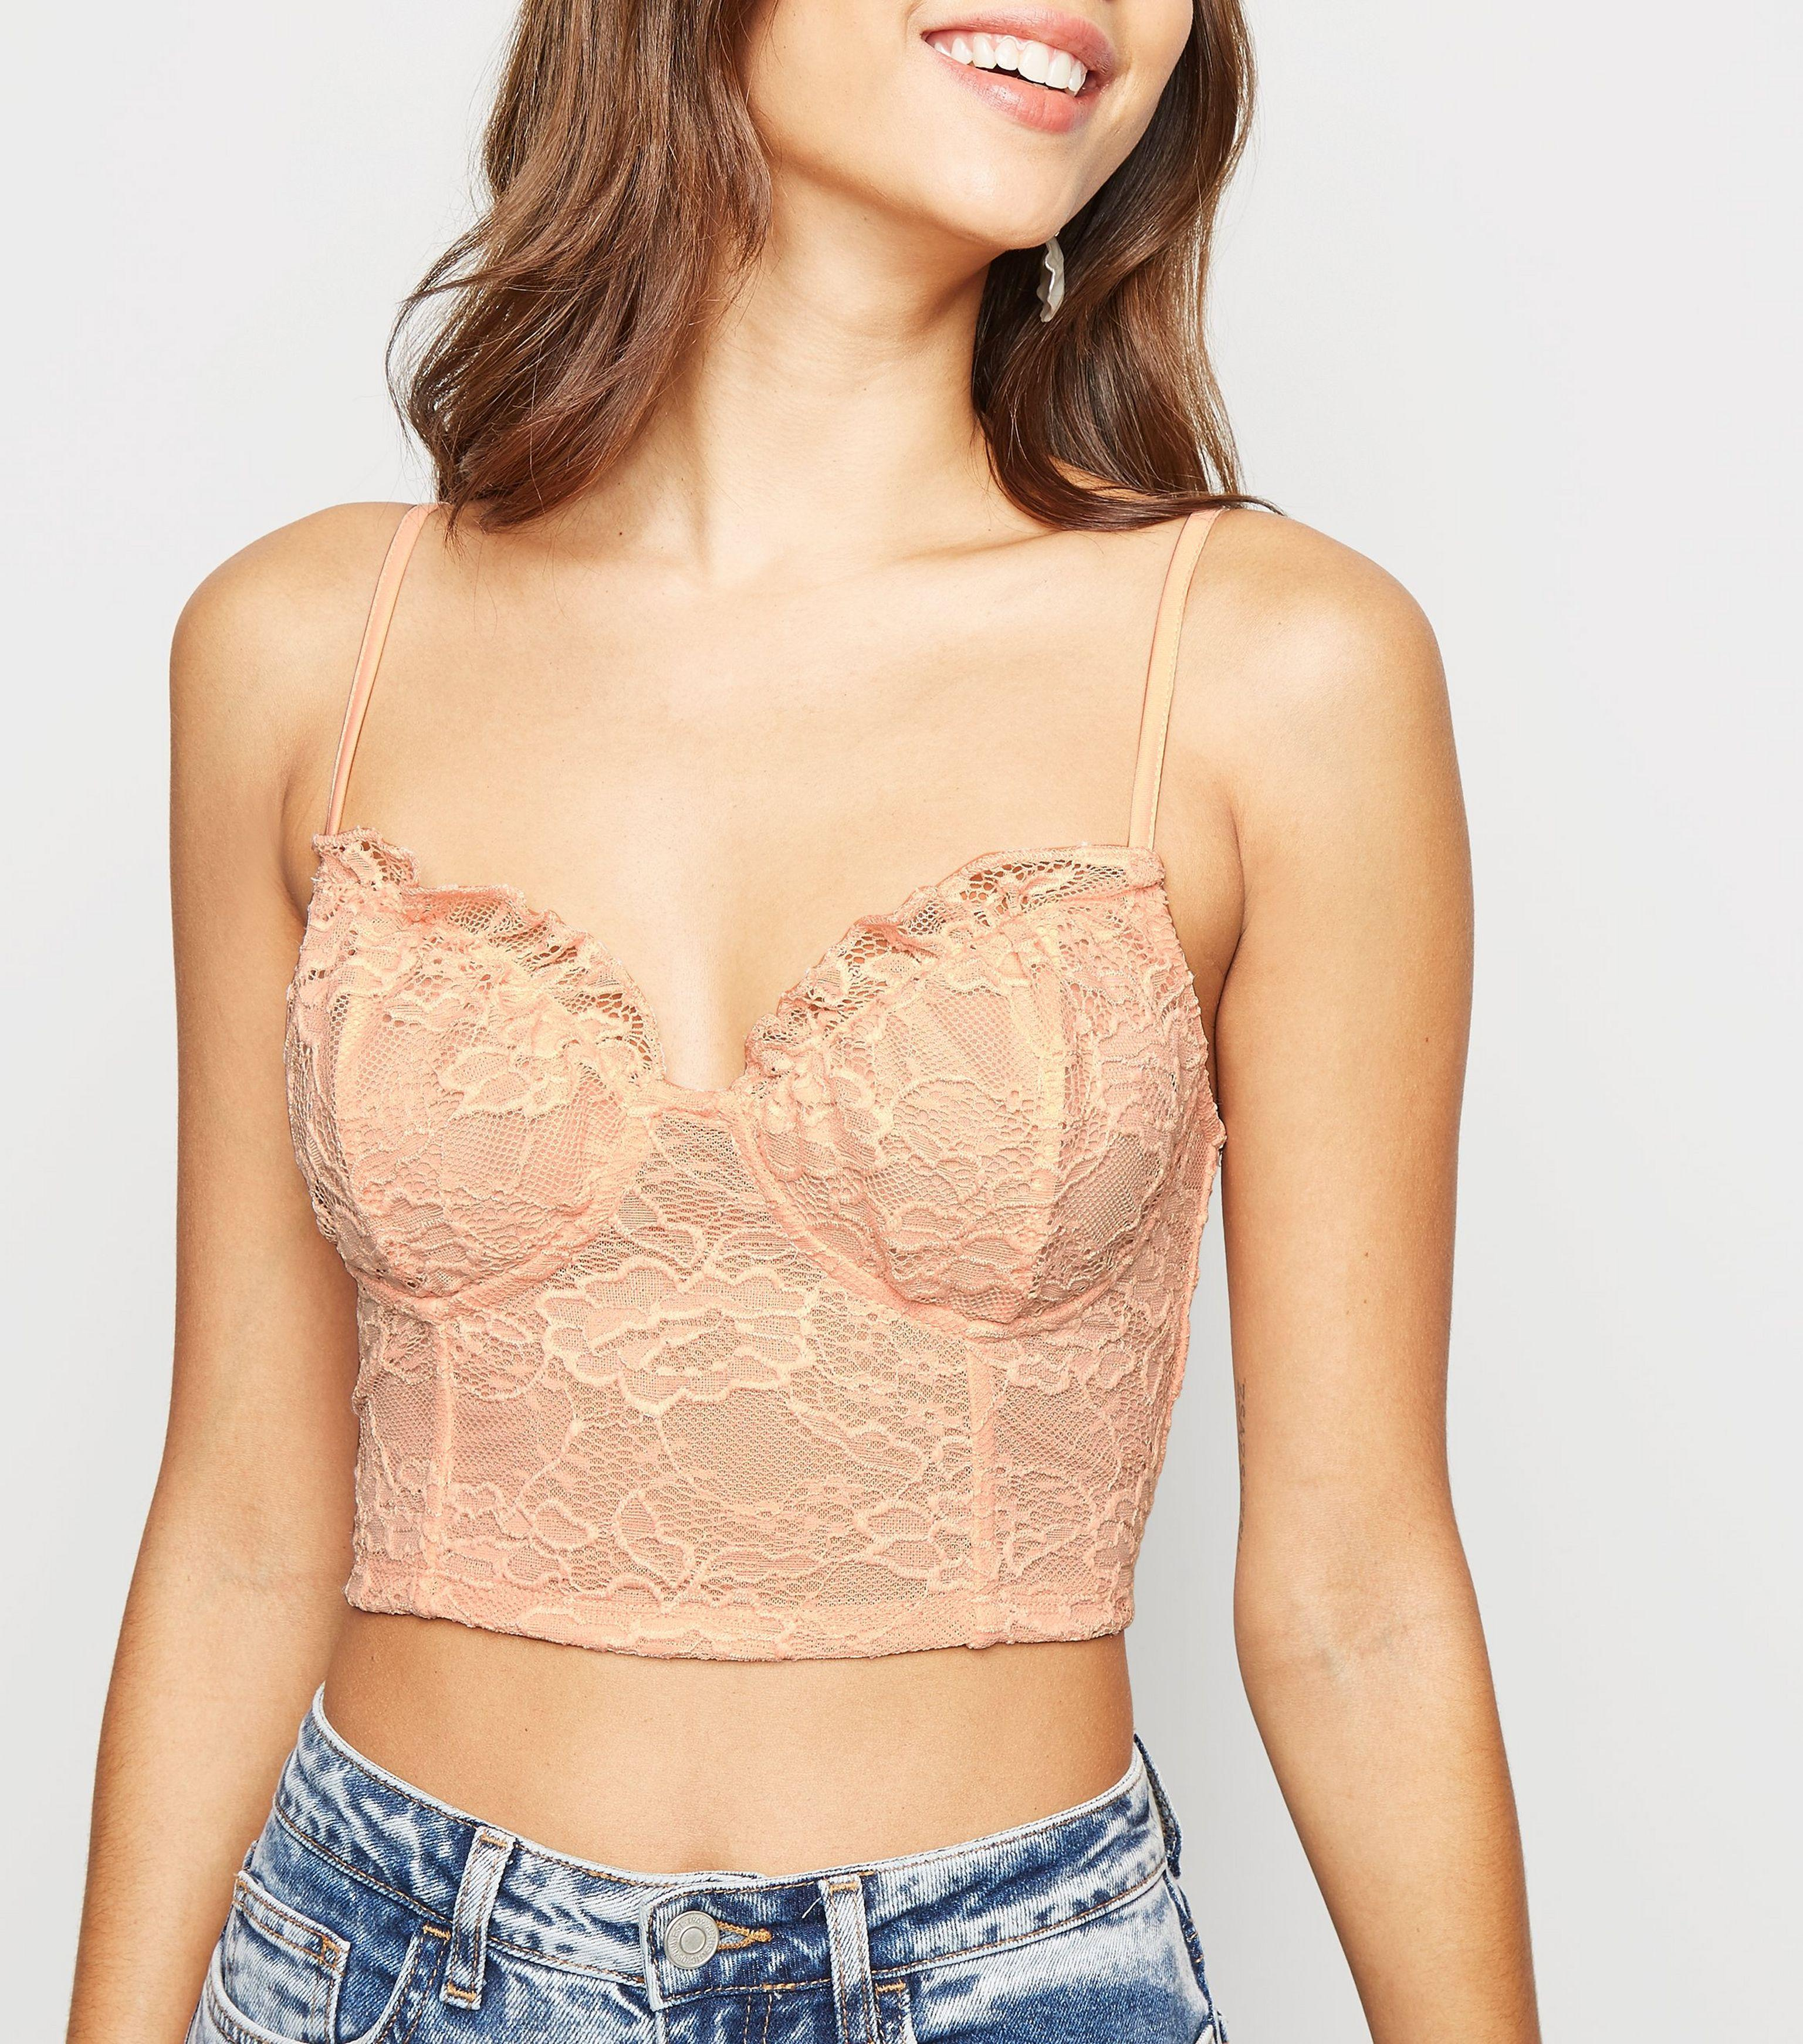 a6f55cd945daf7 New Look Pale Pink Lace Milkmaid Bralette in Pink - Lyst